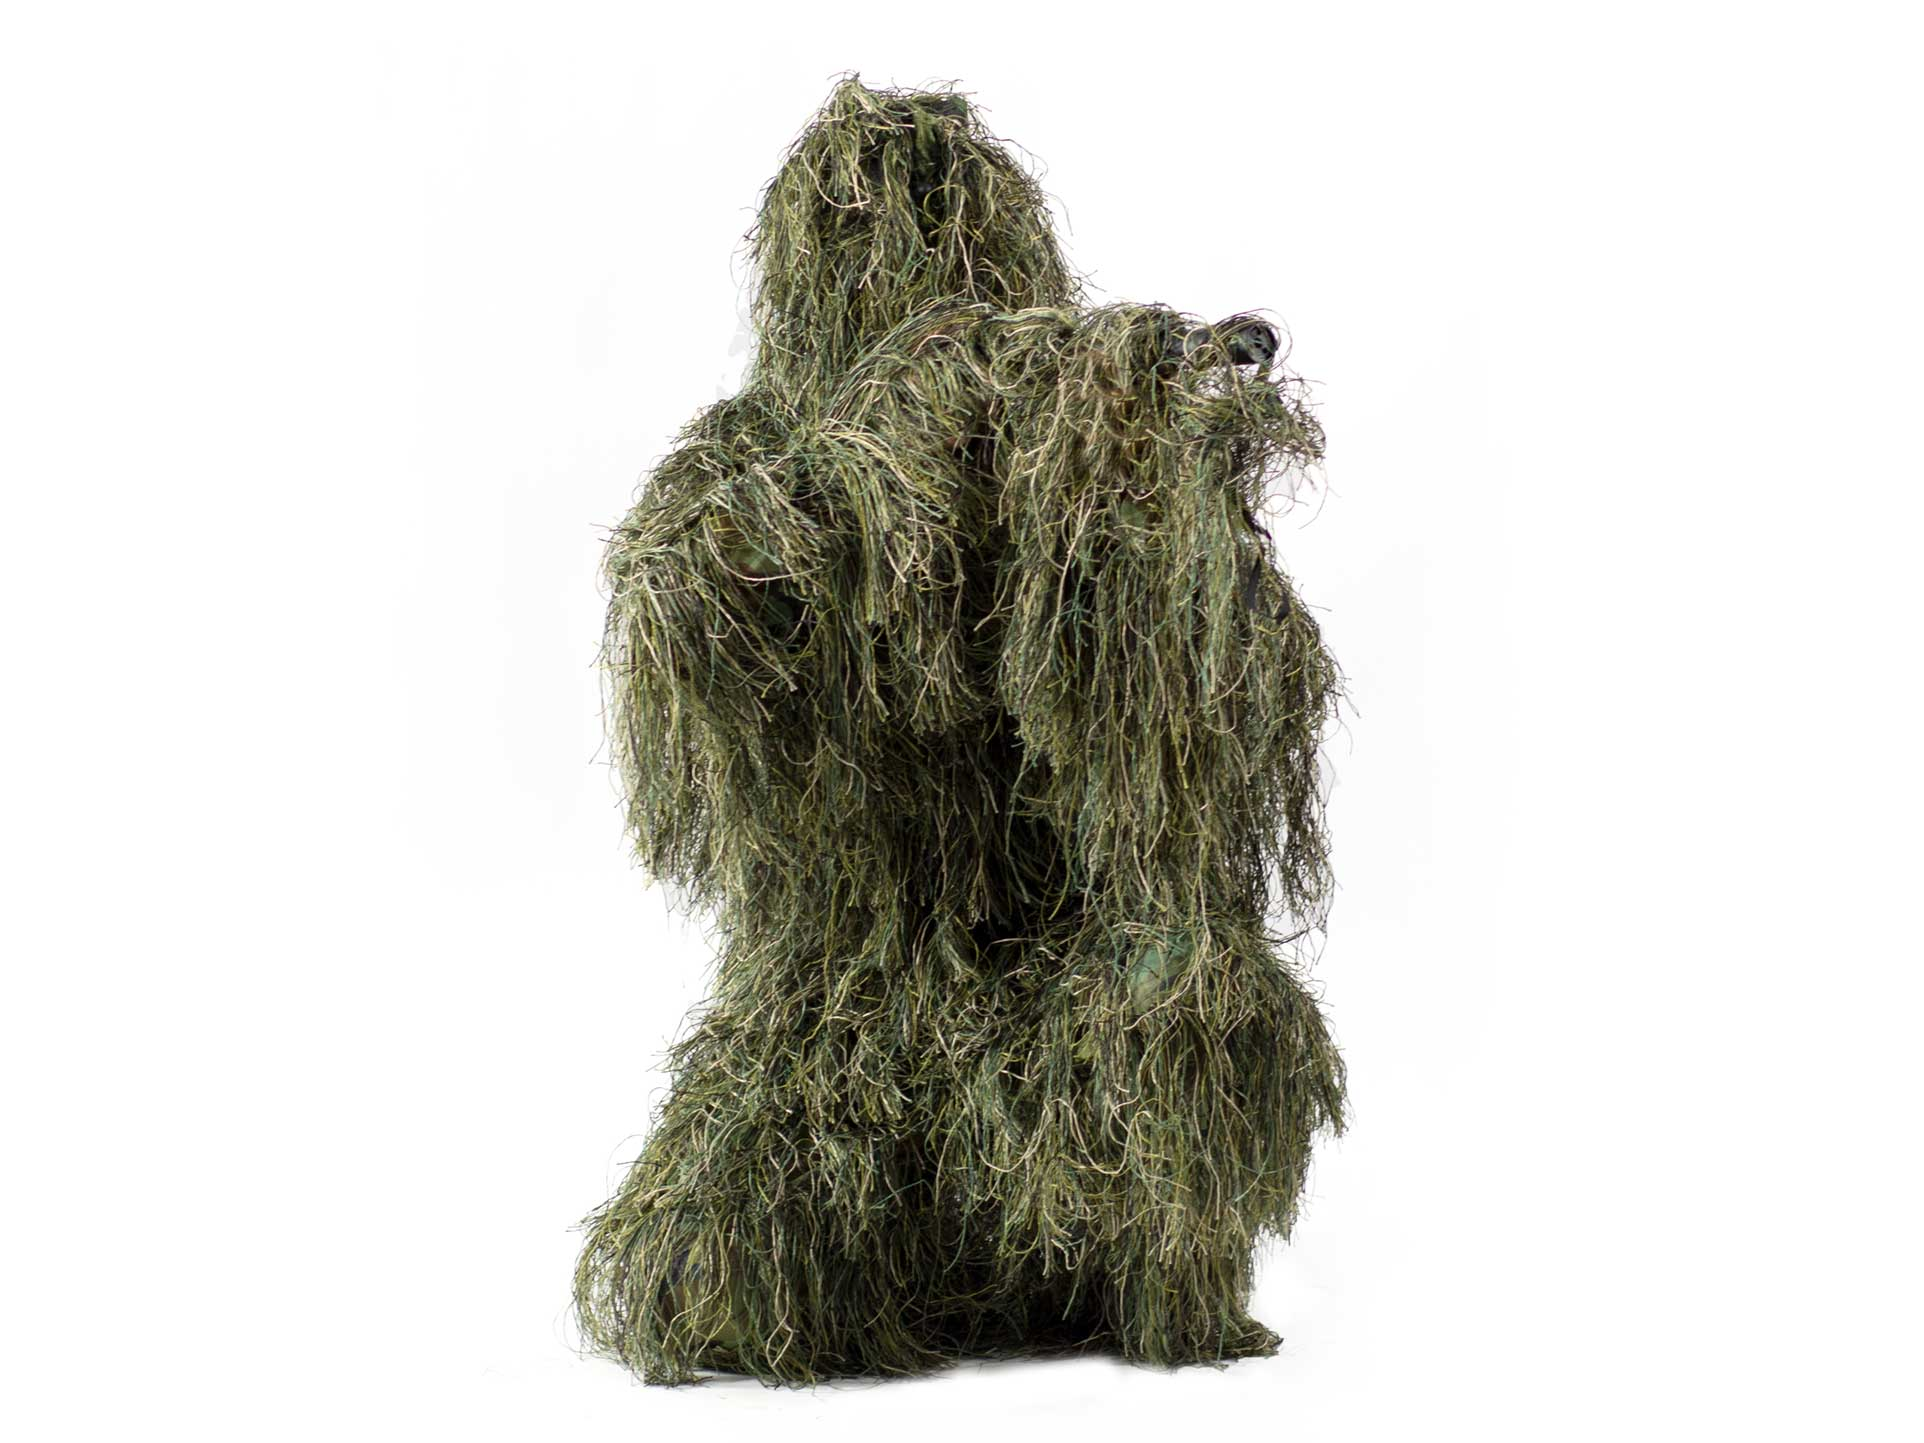 Ghillie suit in woodland camo